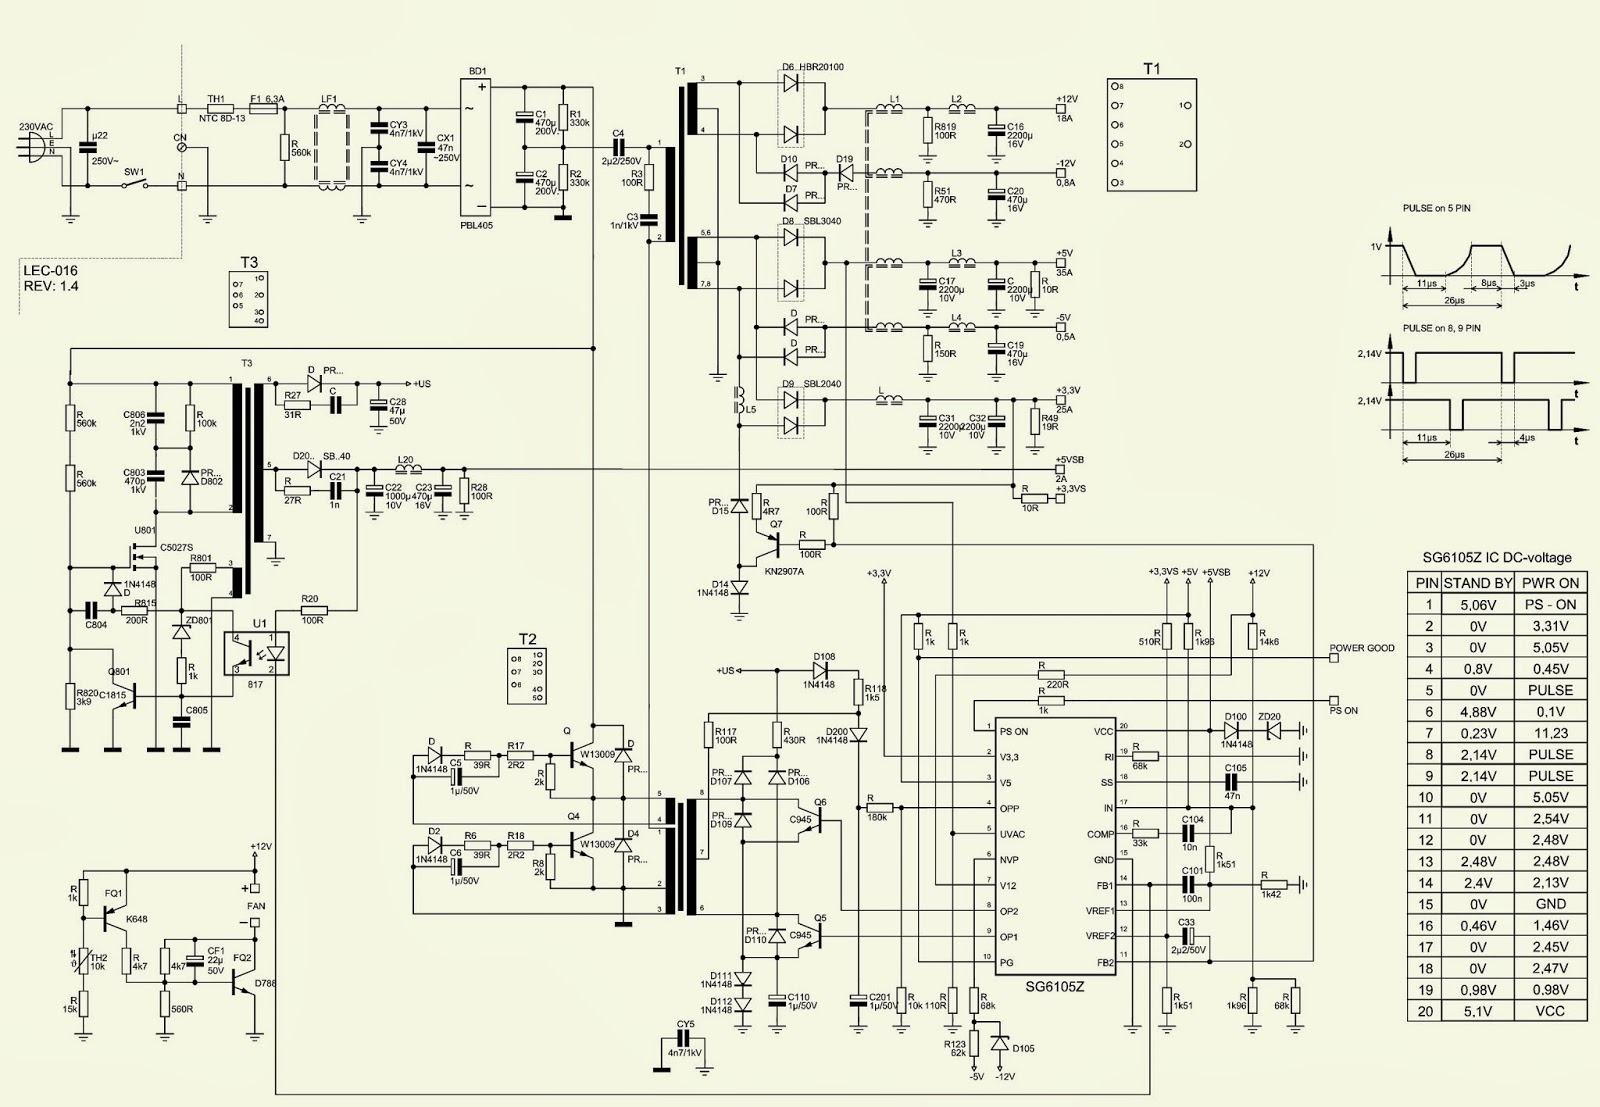 medium resolution of atx power supply wiring diagram 31 wiring diagram images atx psu circuit diagram atx power supply